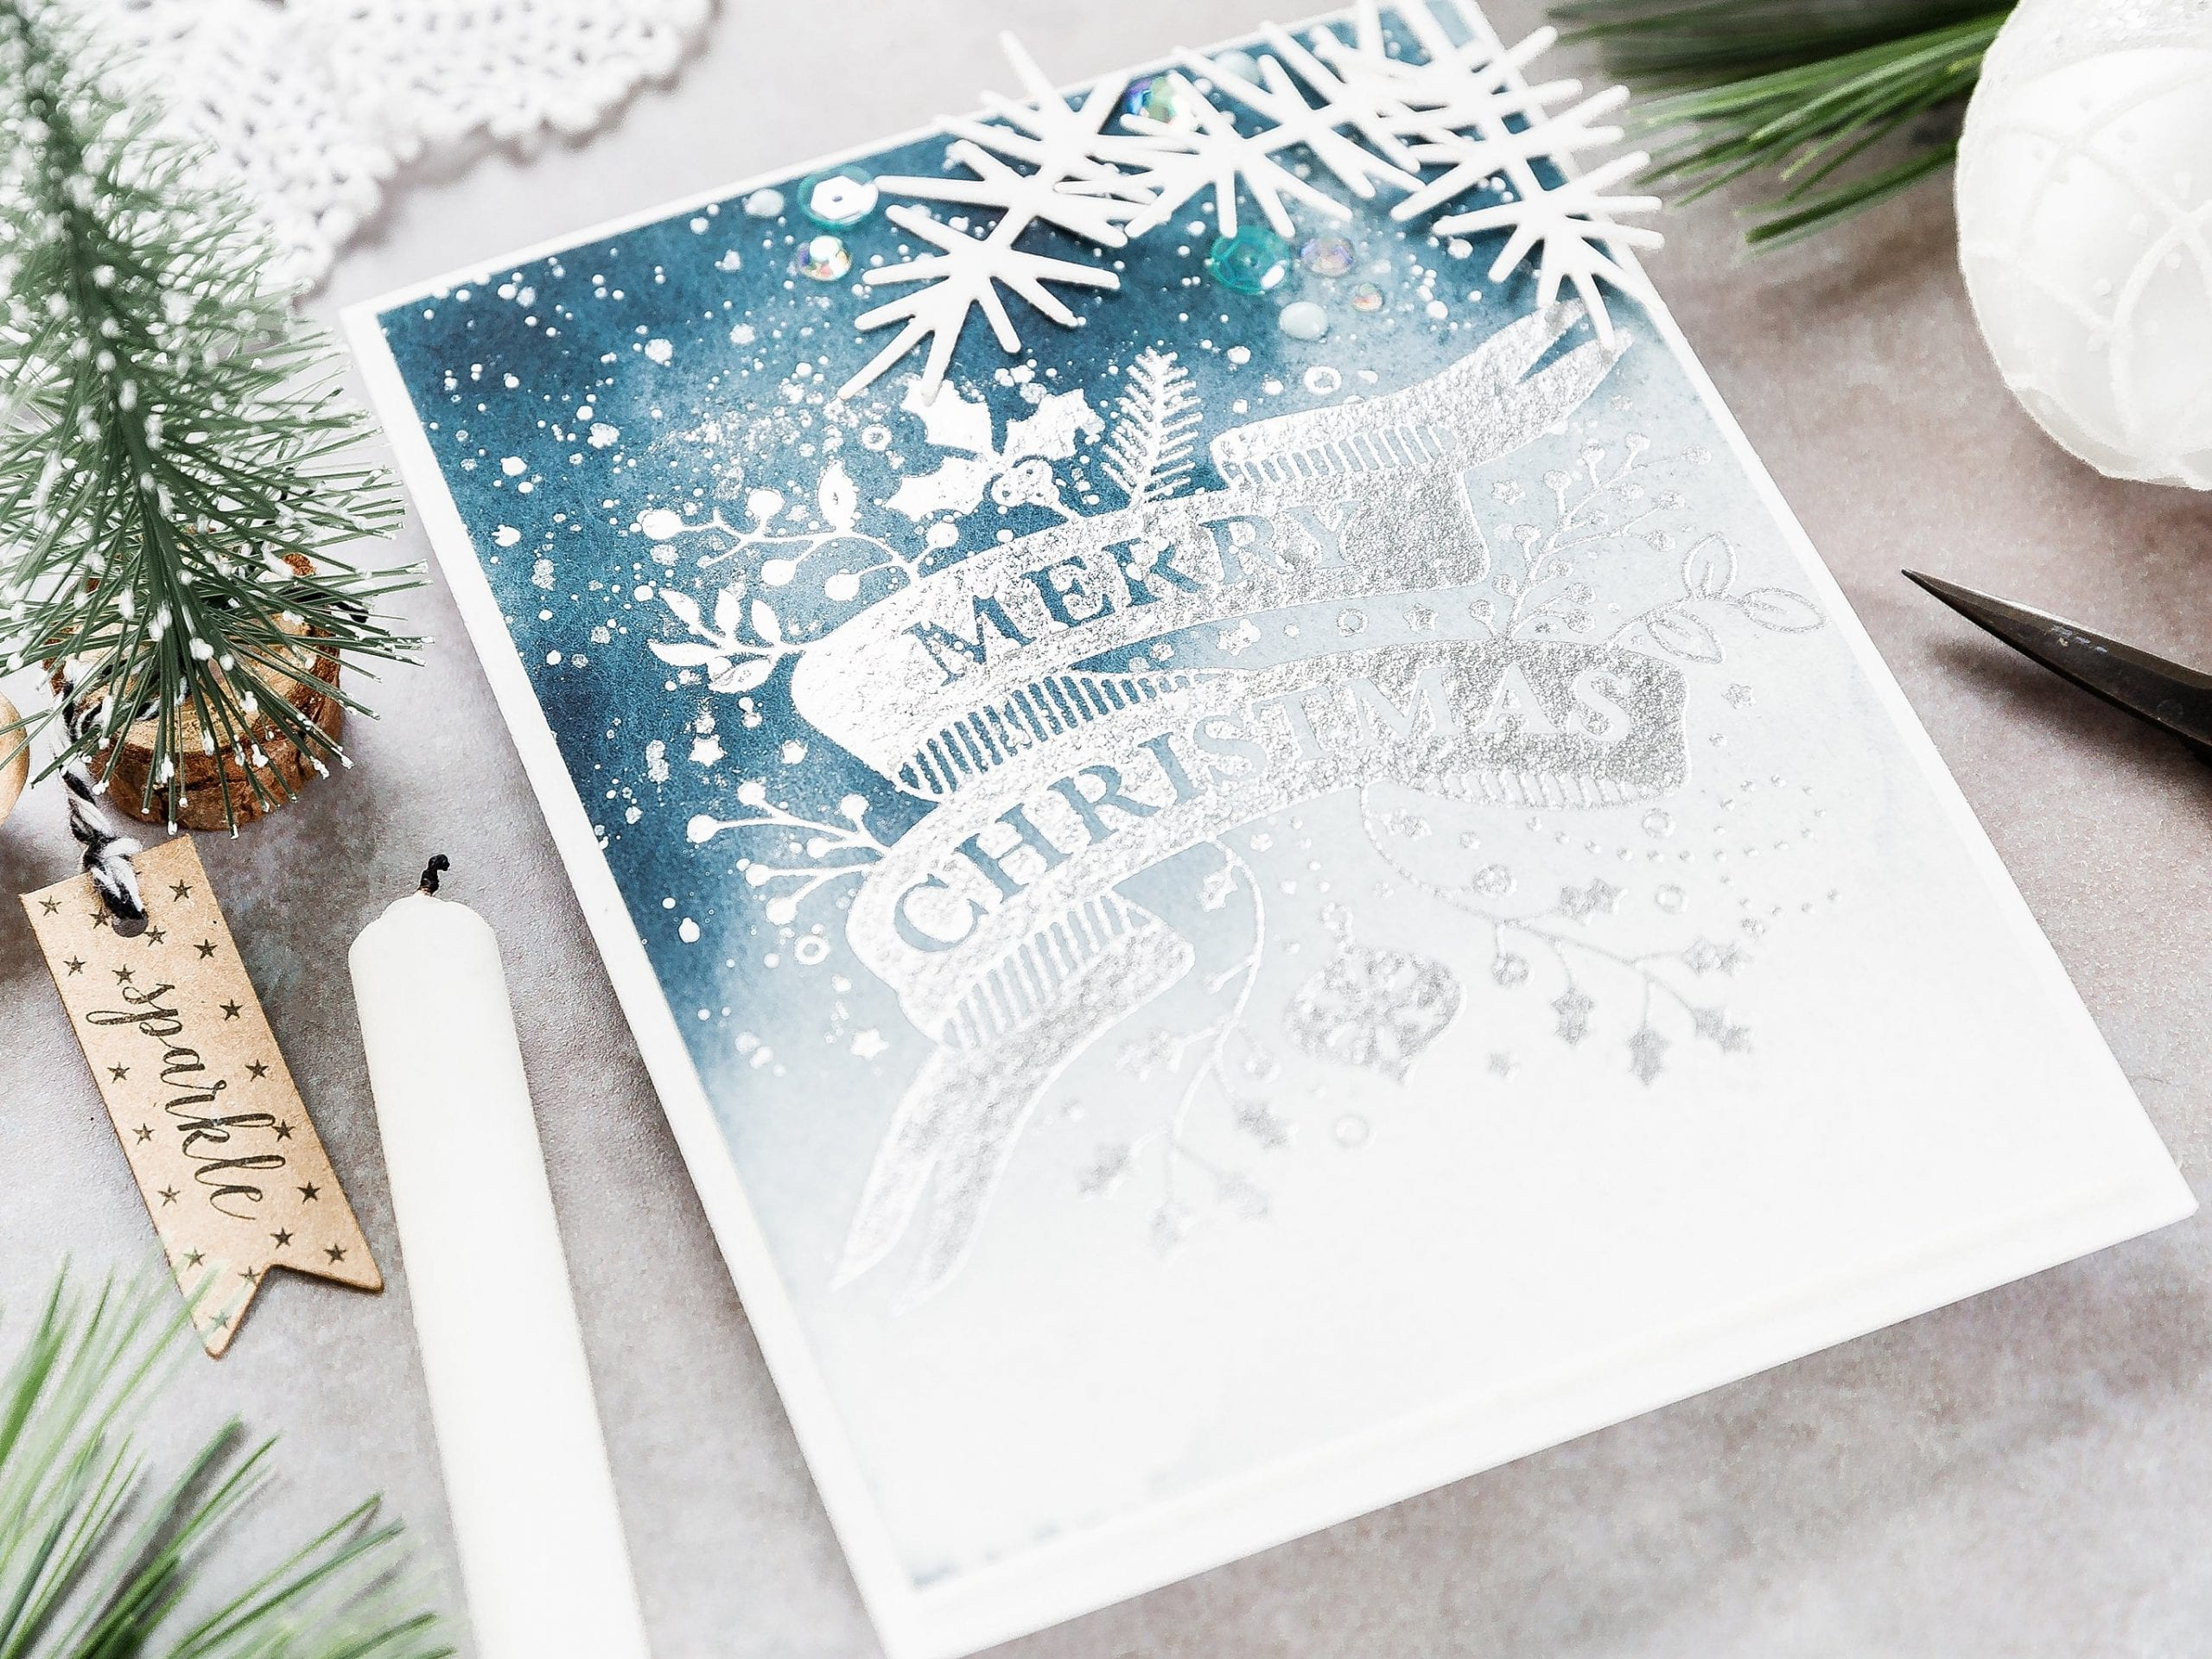 Video – Foiled Watercolour Christmas Card